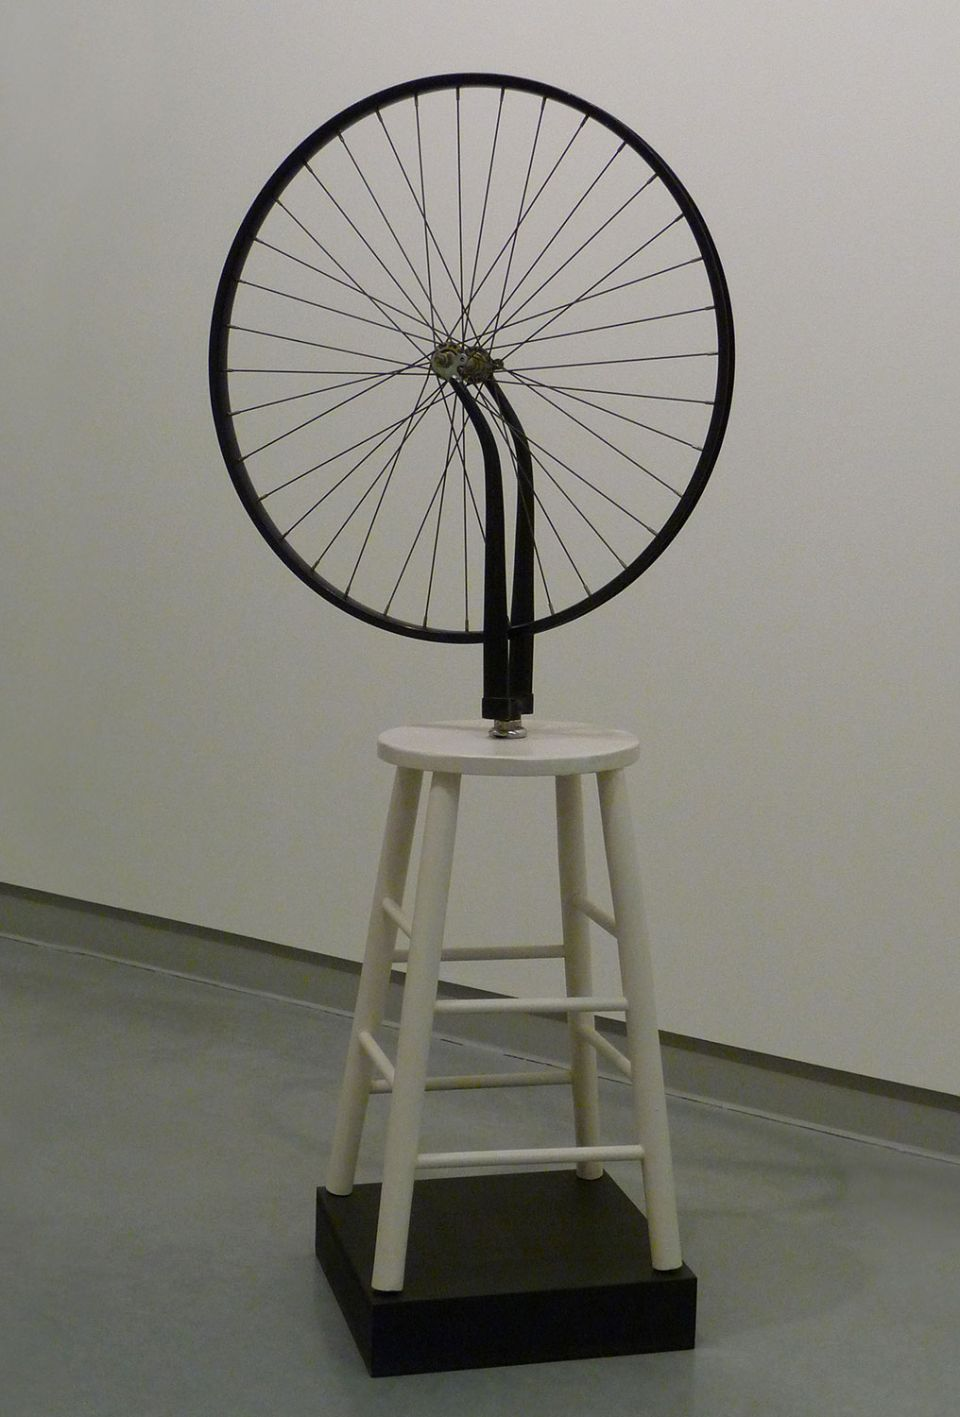 Sturtevant, 'Duchamp Bicycle Wheel' (1969-1973, bicycle wheel on wooden stool) 4